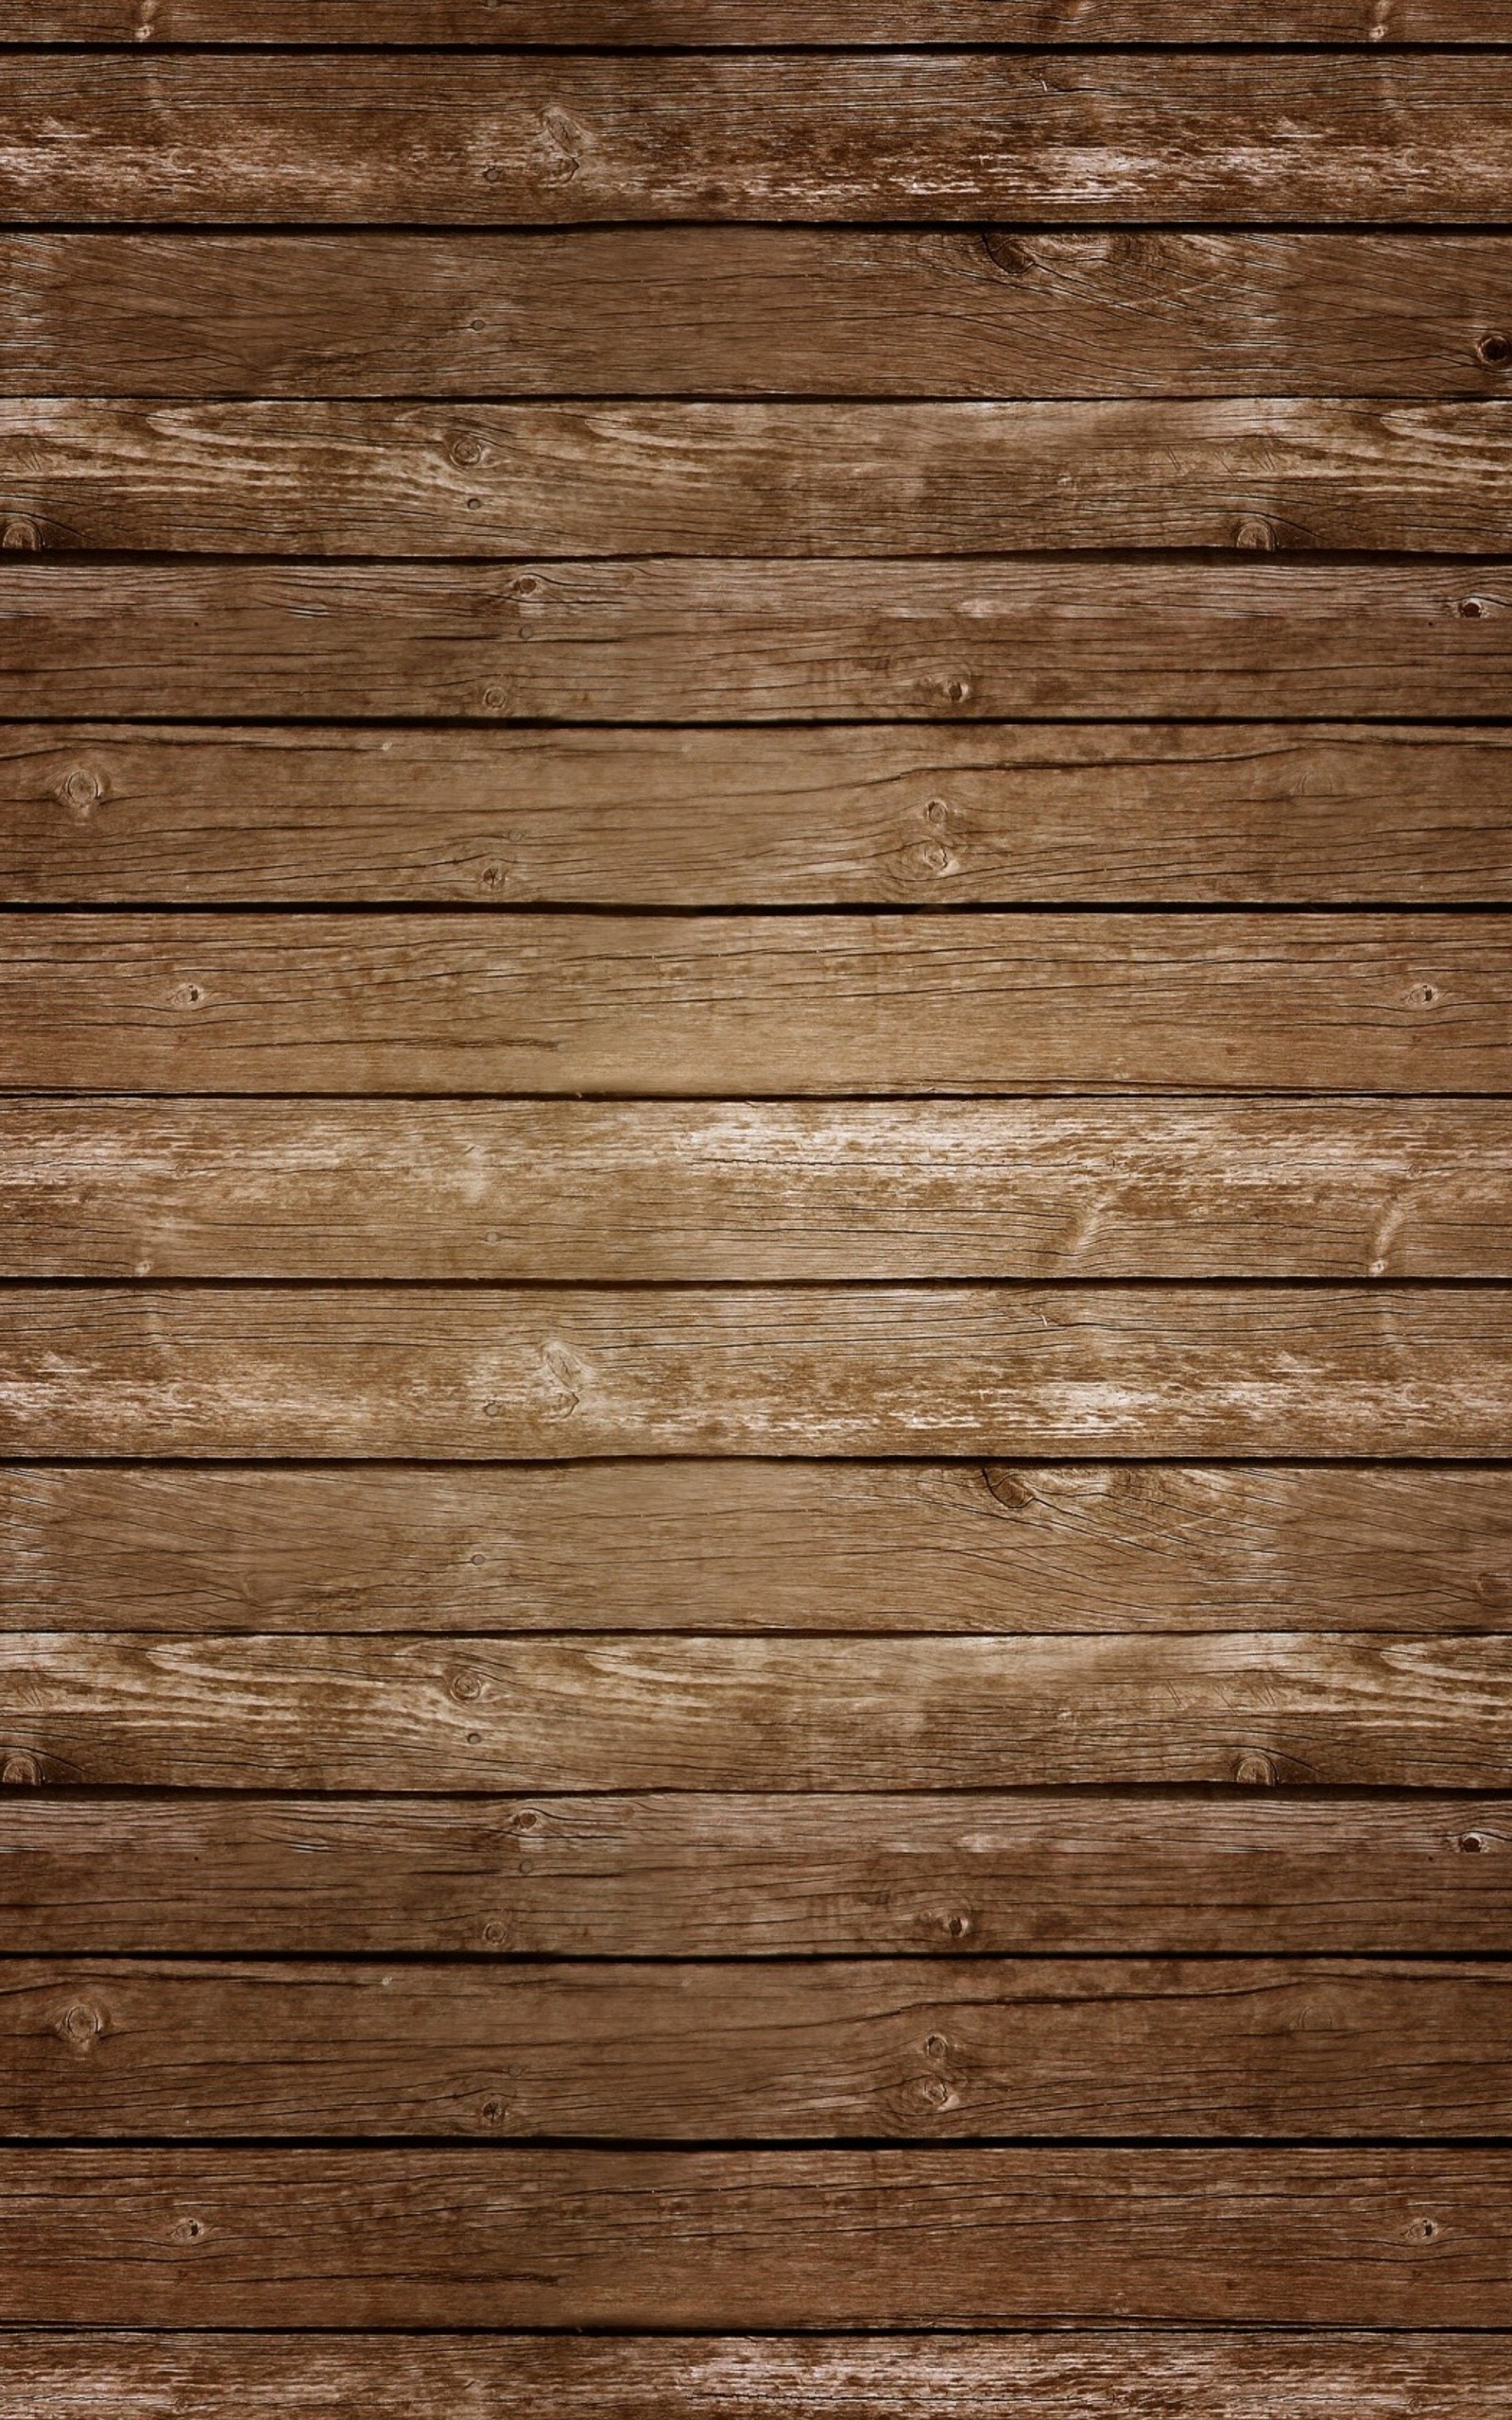 Rustic background ·① download free awesome wallpapers for